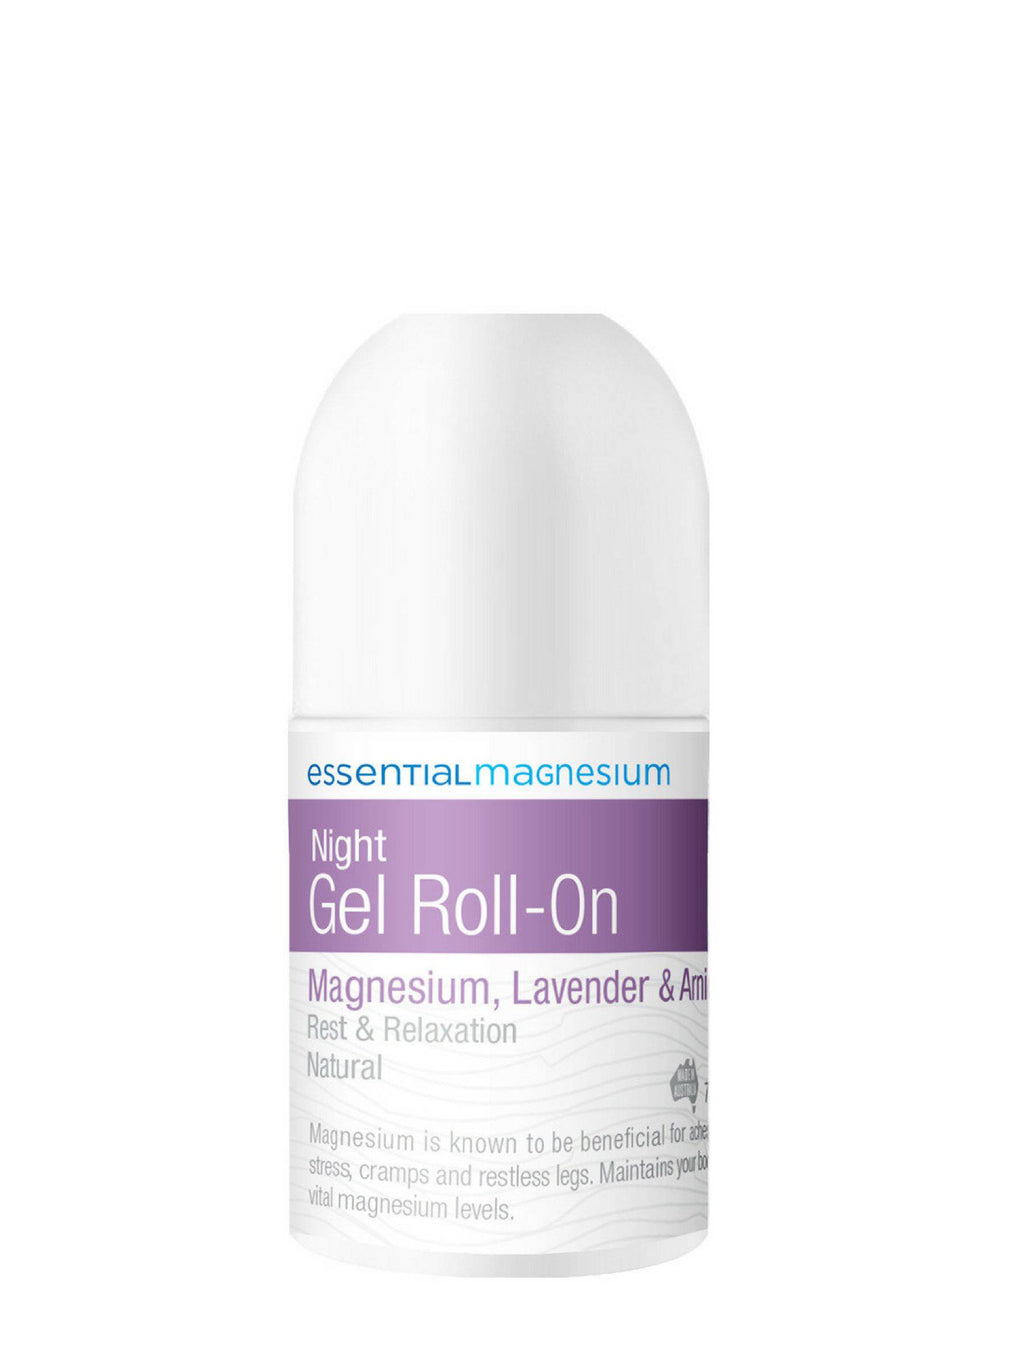 Night Gel Roll On, 75 ml.